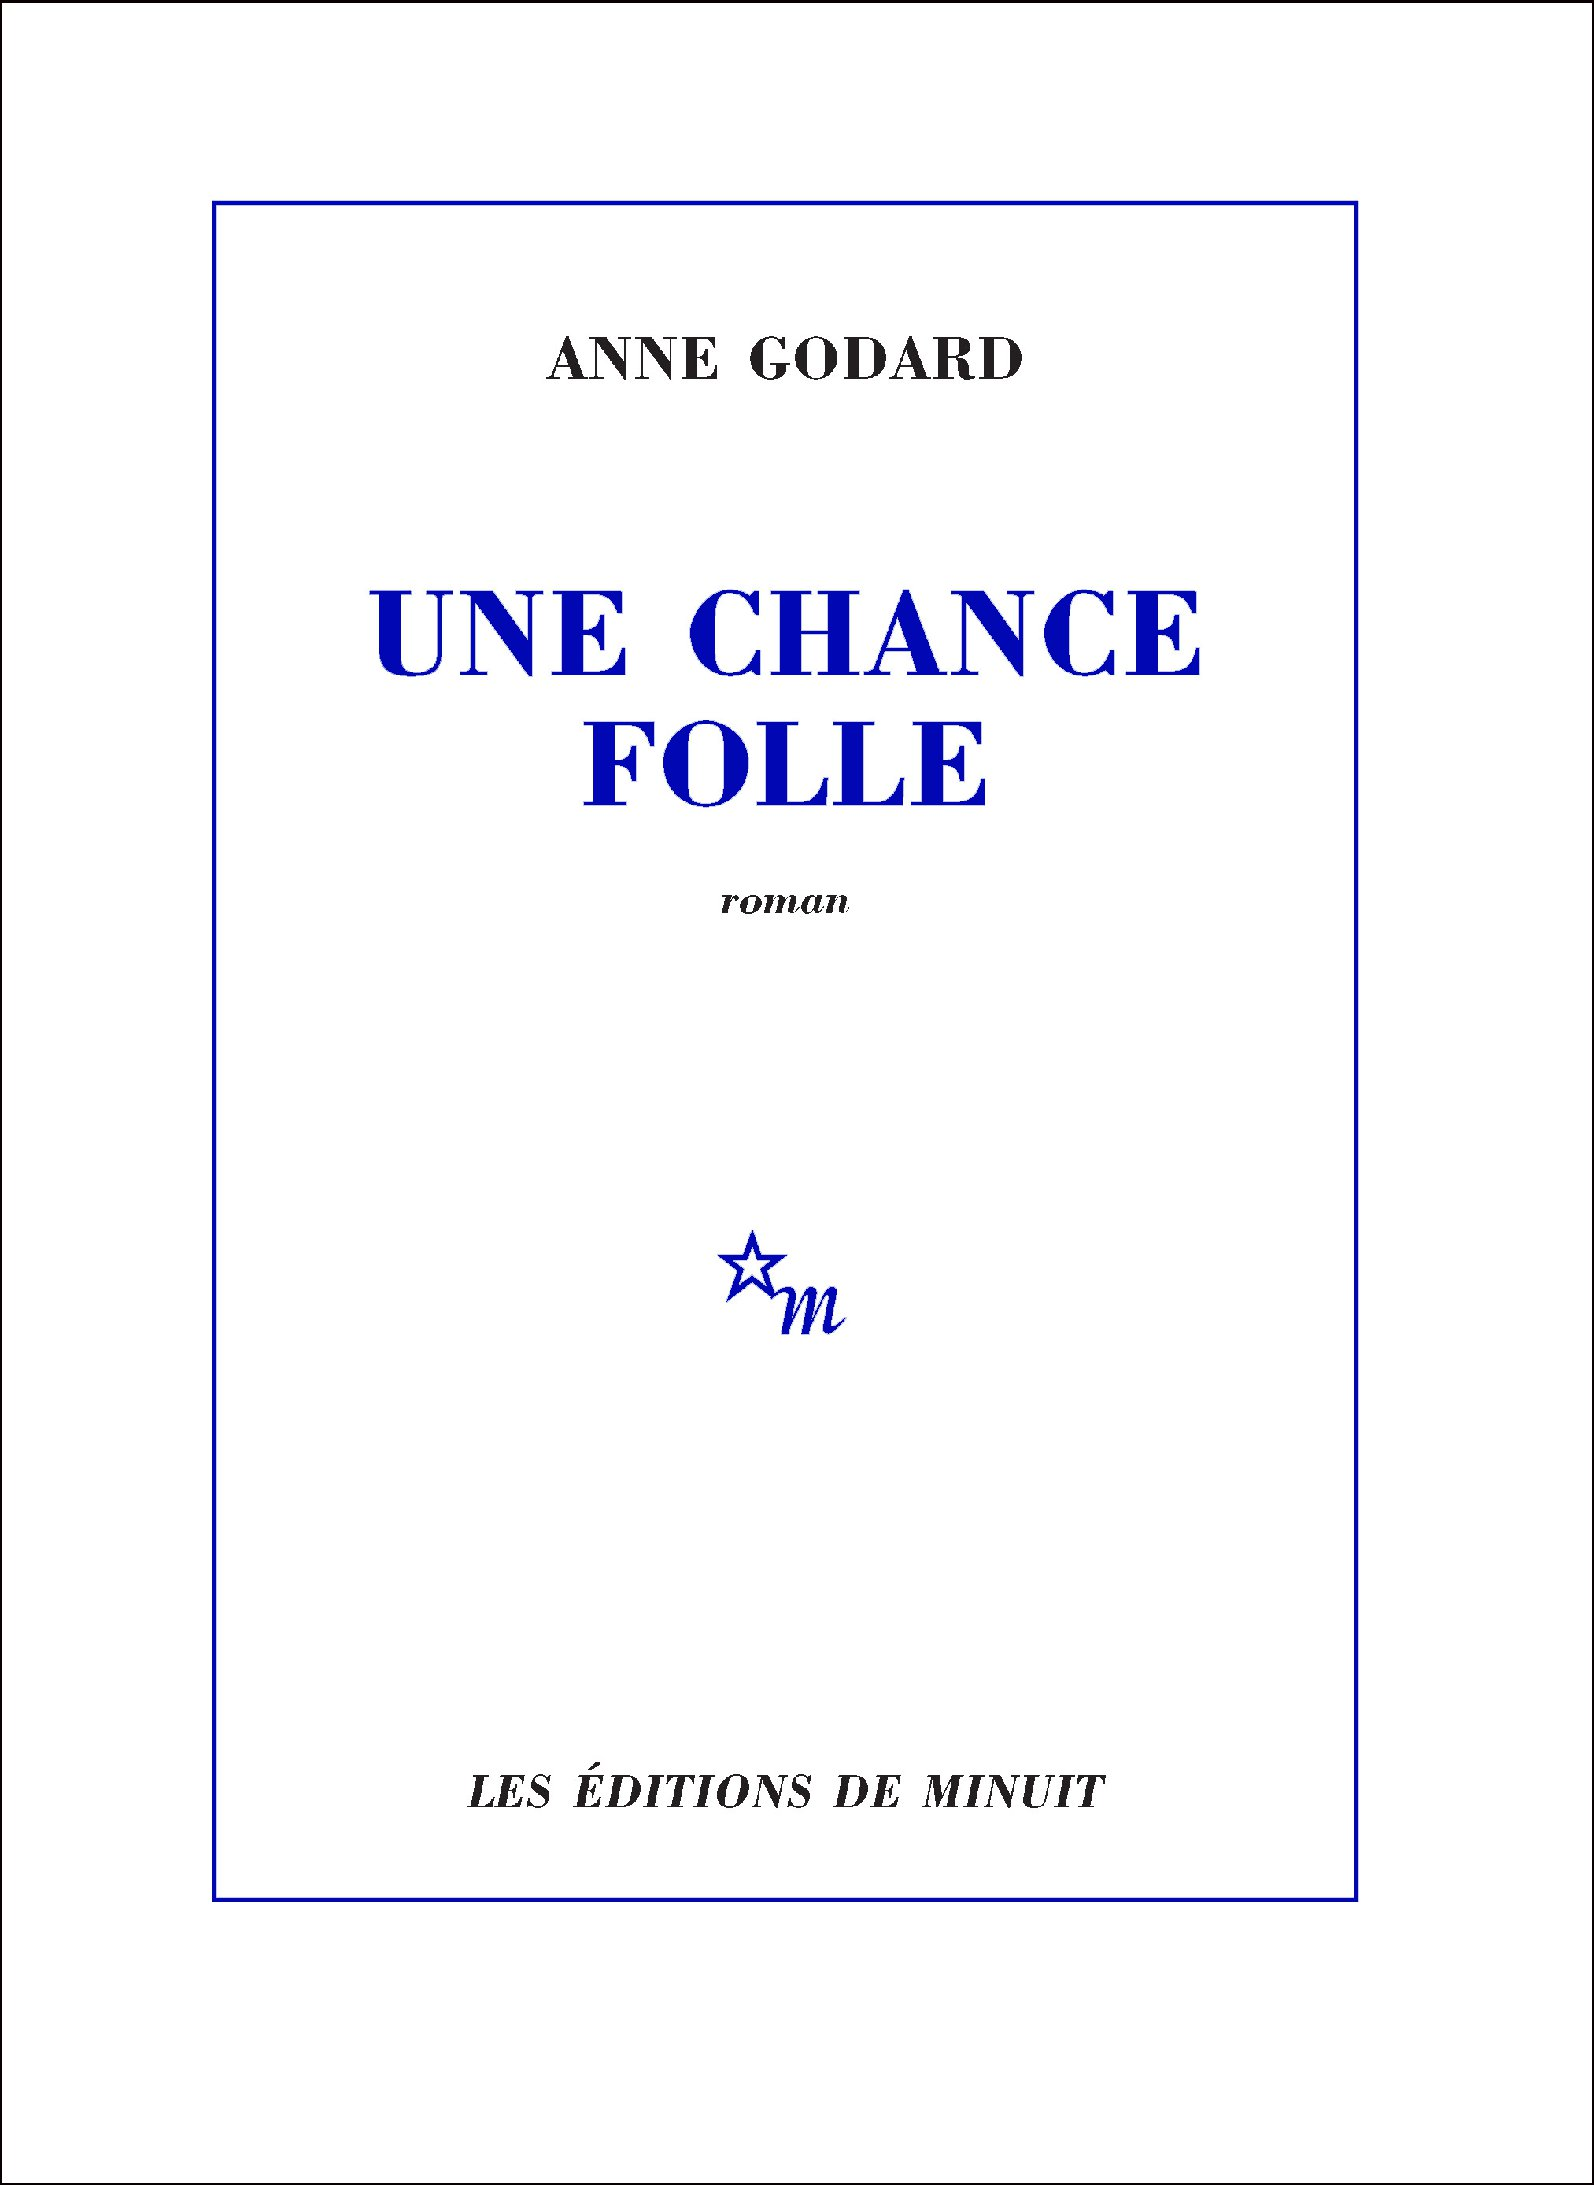 Une chance folle | Godard, Anne